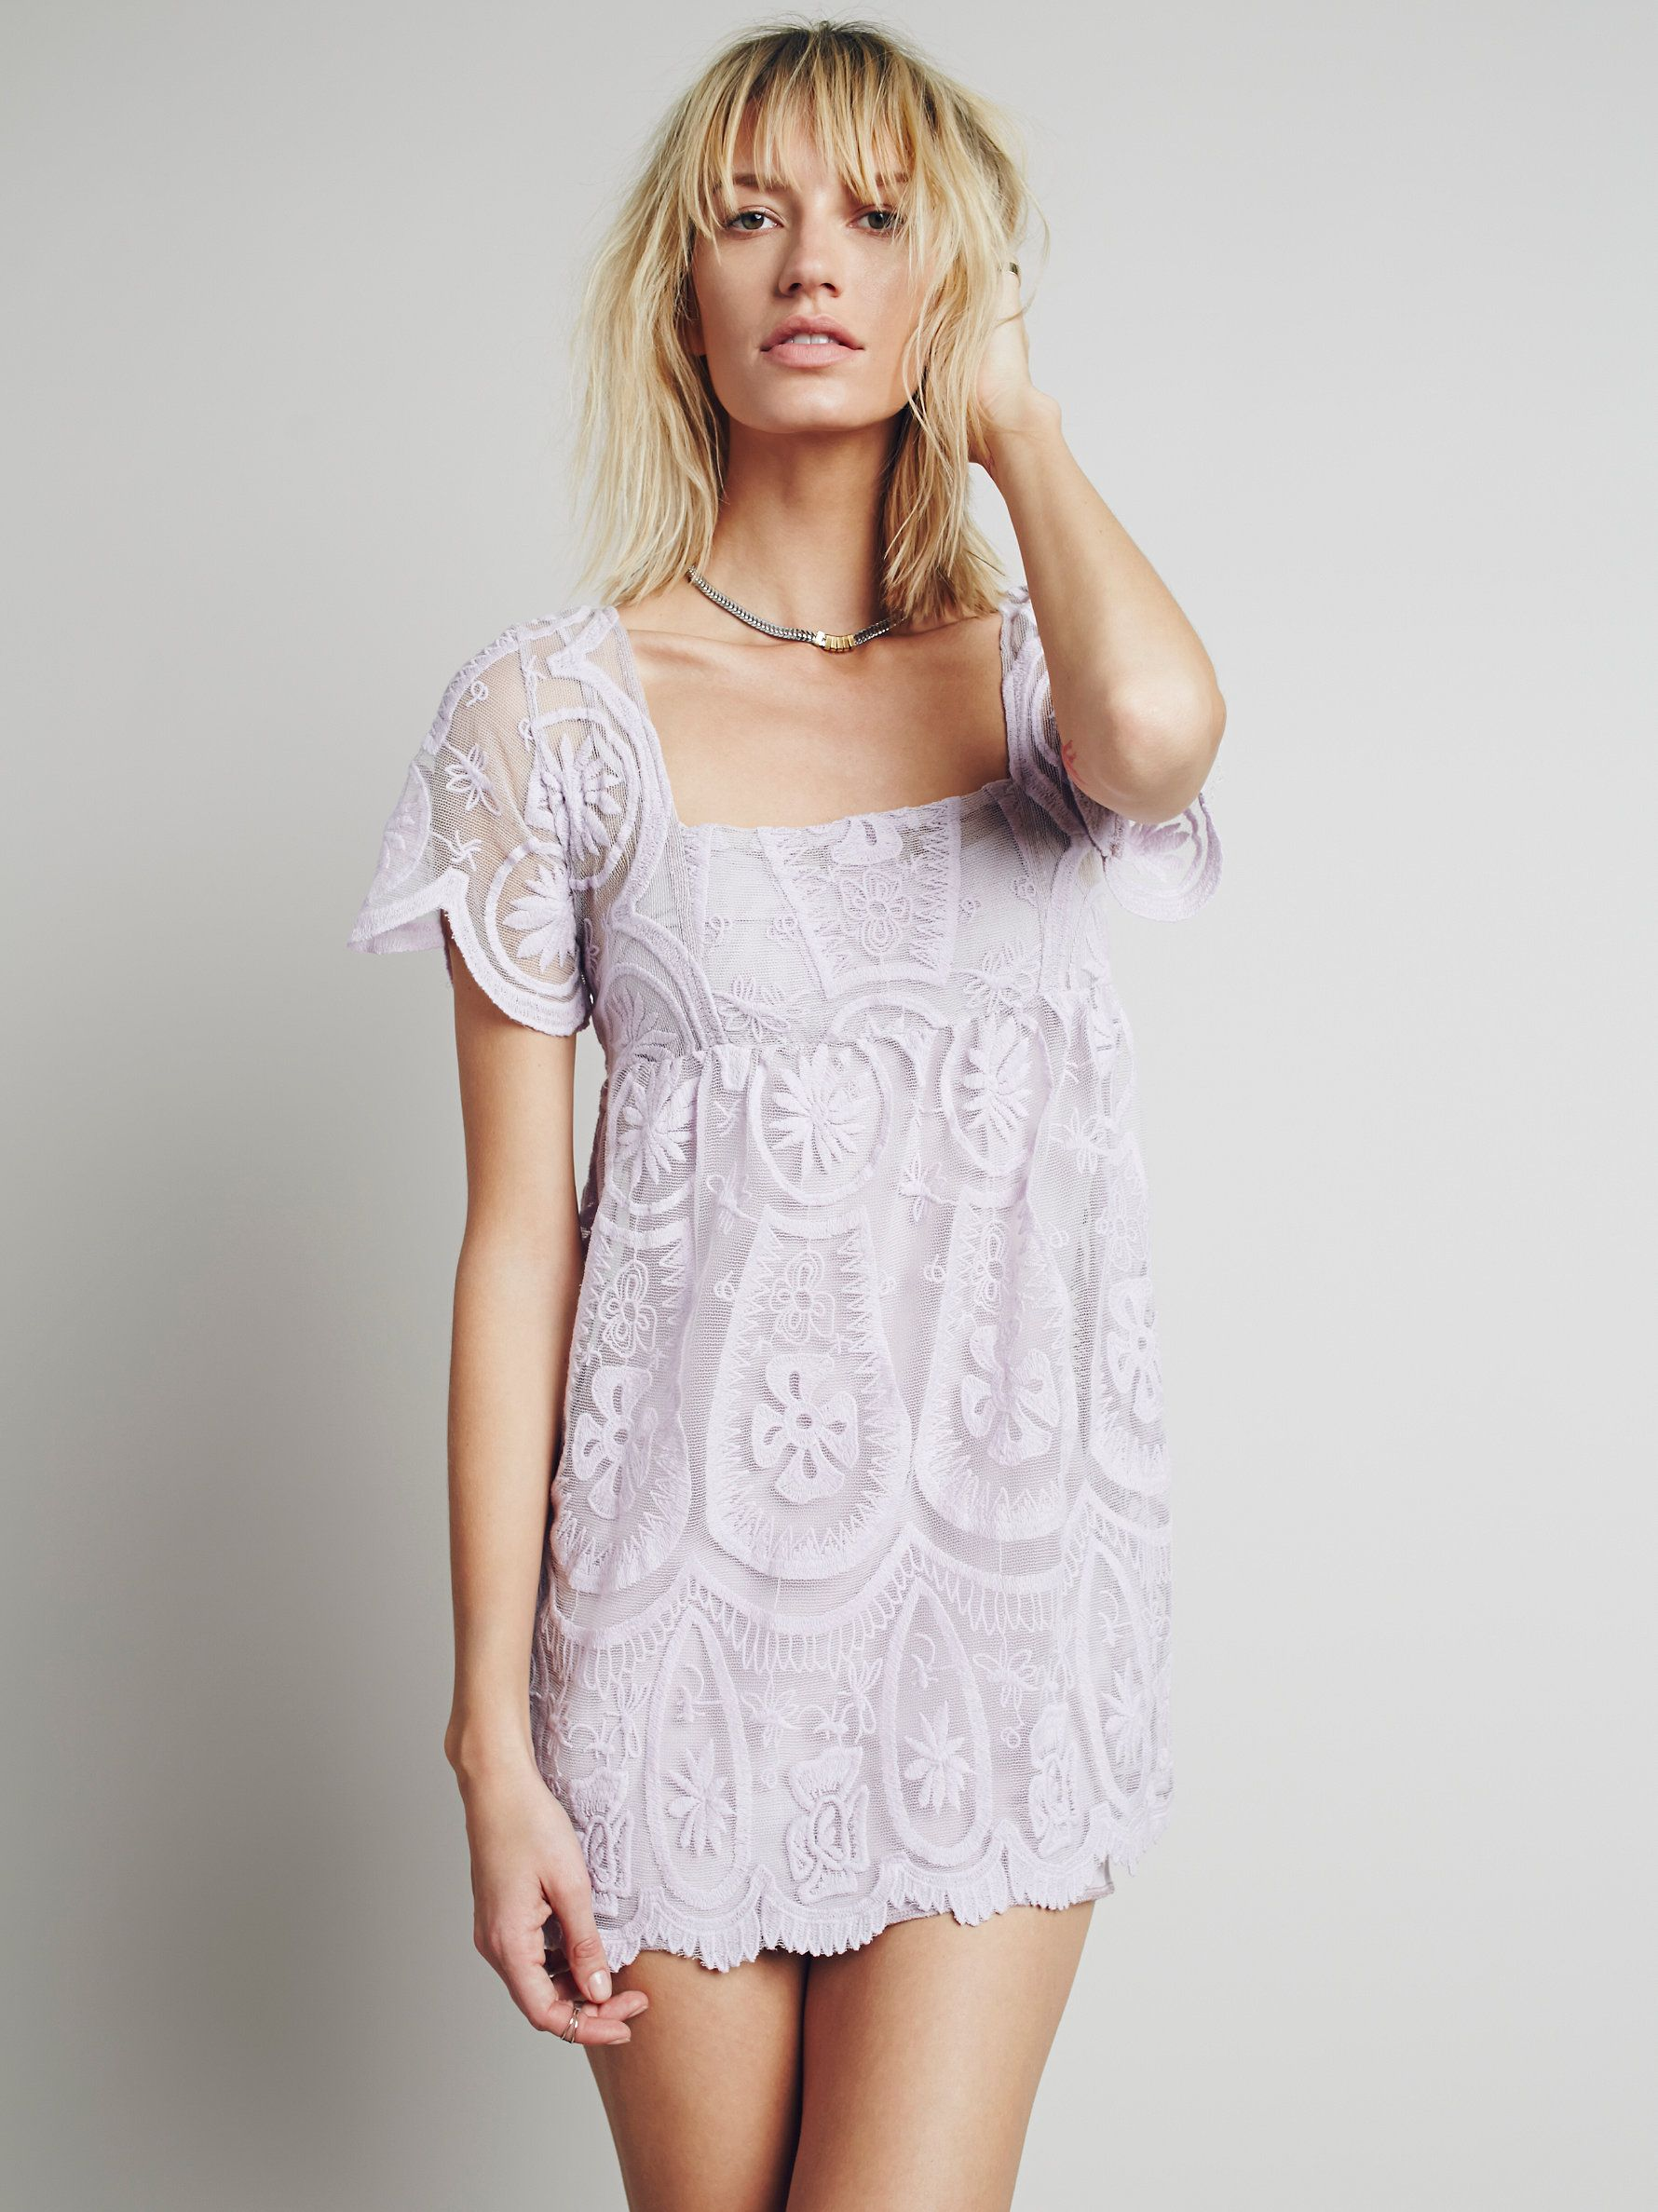 At free people pixie short sleeved dress in lilac styles that rock